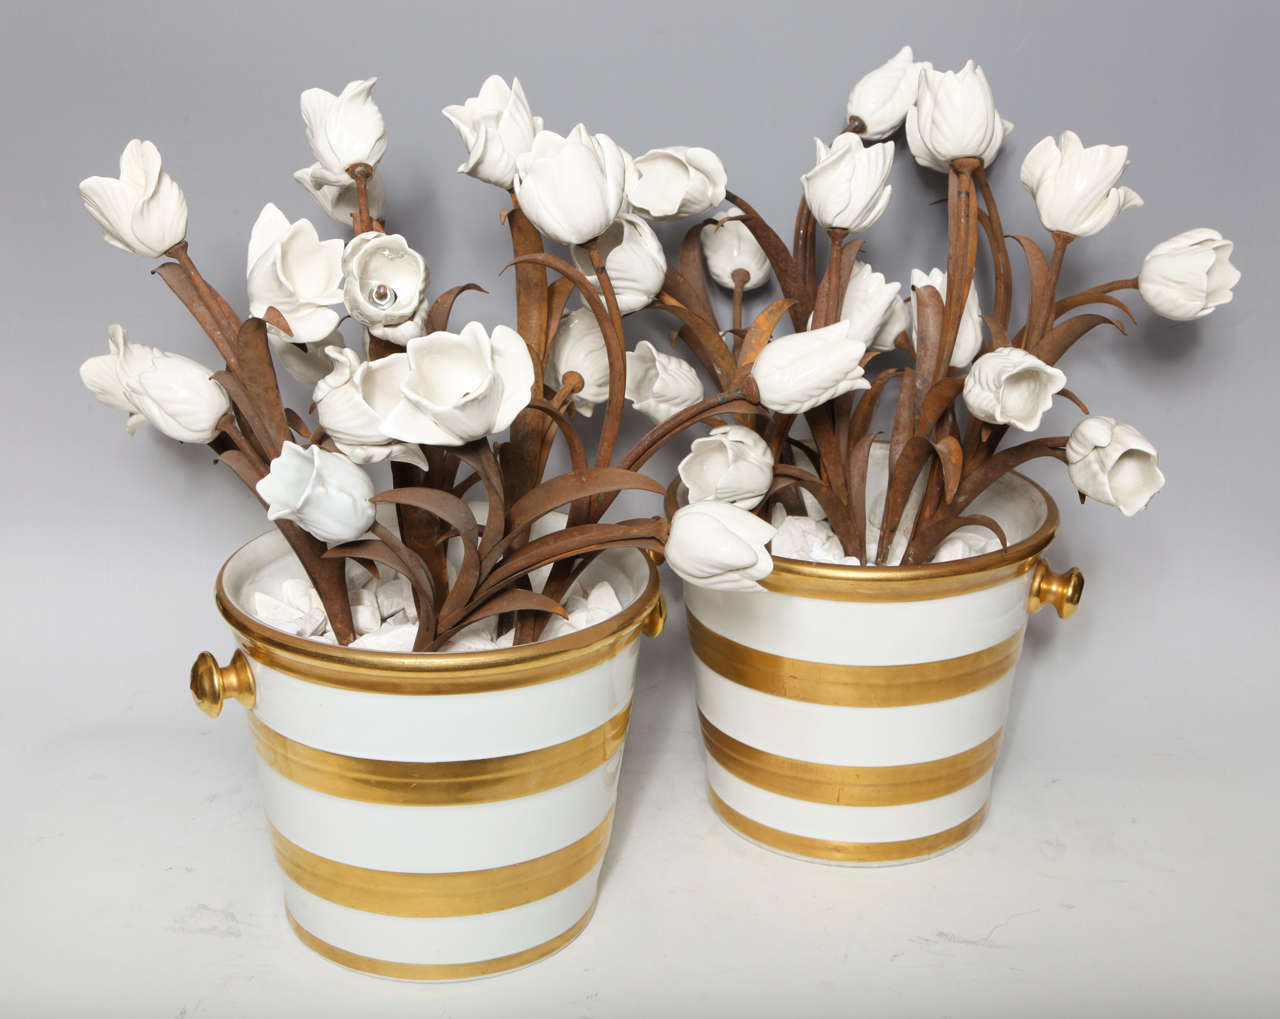 A large and quite unusual pair of antique French Louis XVI style white and gold two handled porcelain buckets filled with white tulips mounted on handmade metal stems, attributed to Jansen Paris, circa 1910.